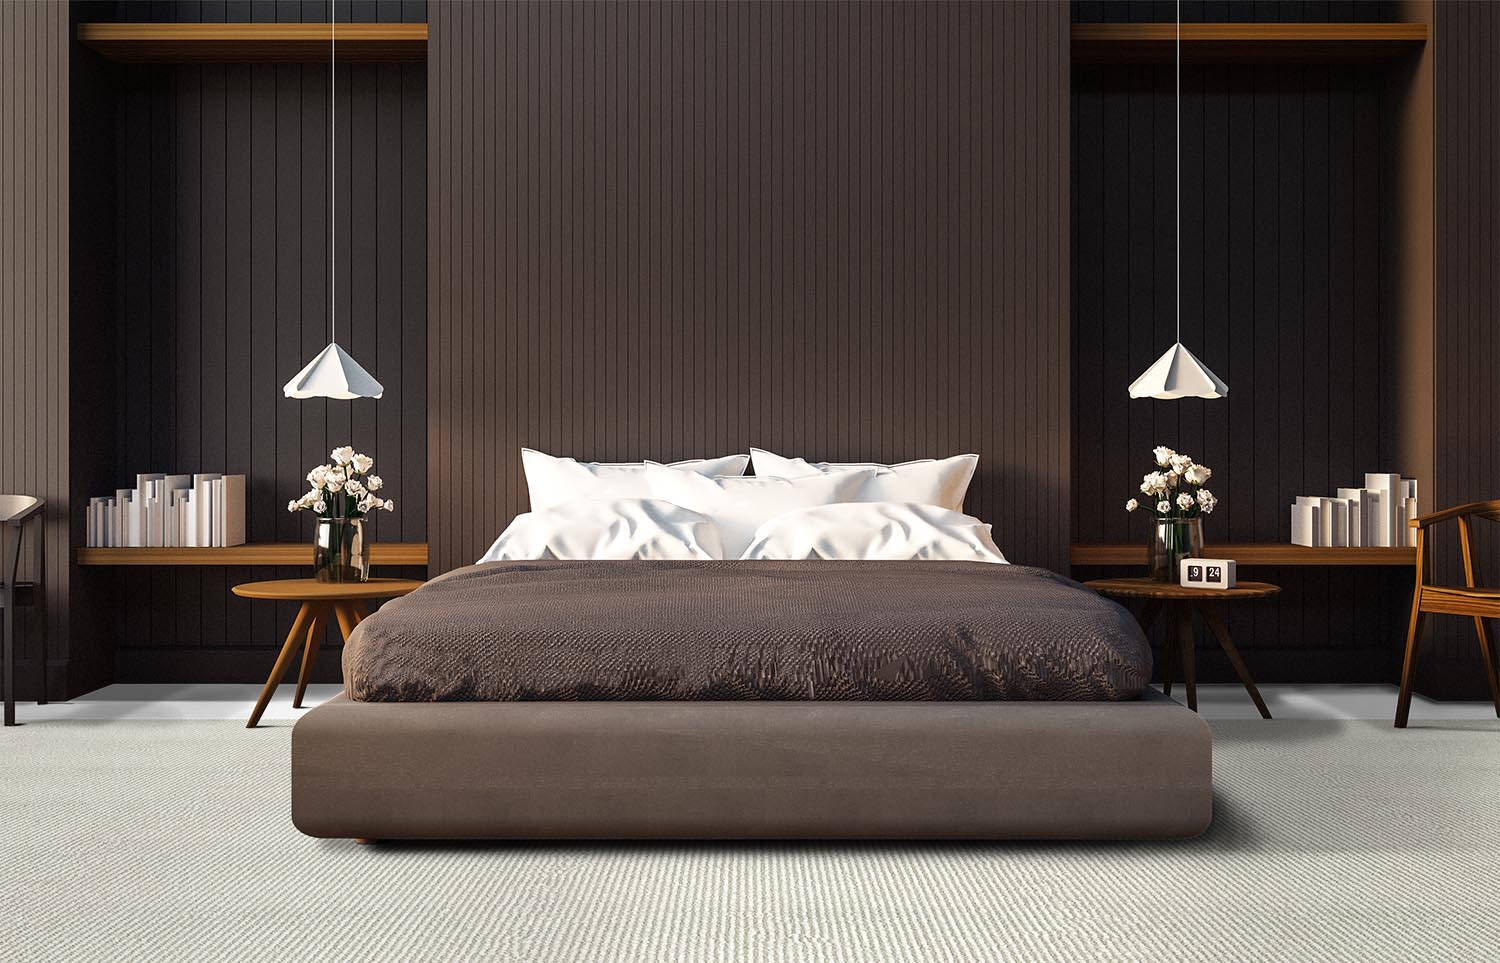 Mindful - Clarity contemporary bedroom